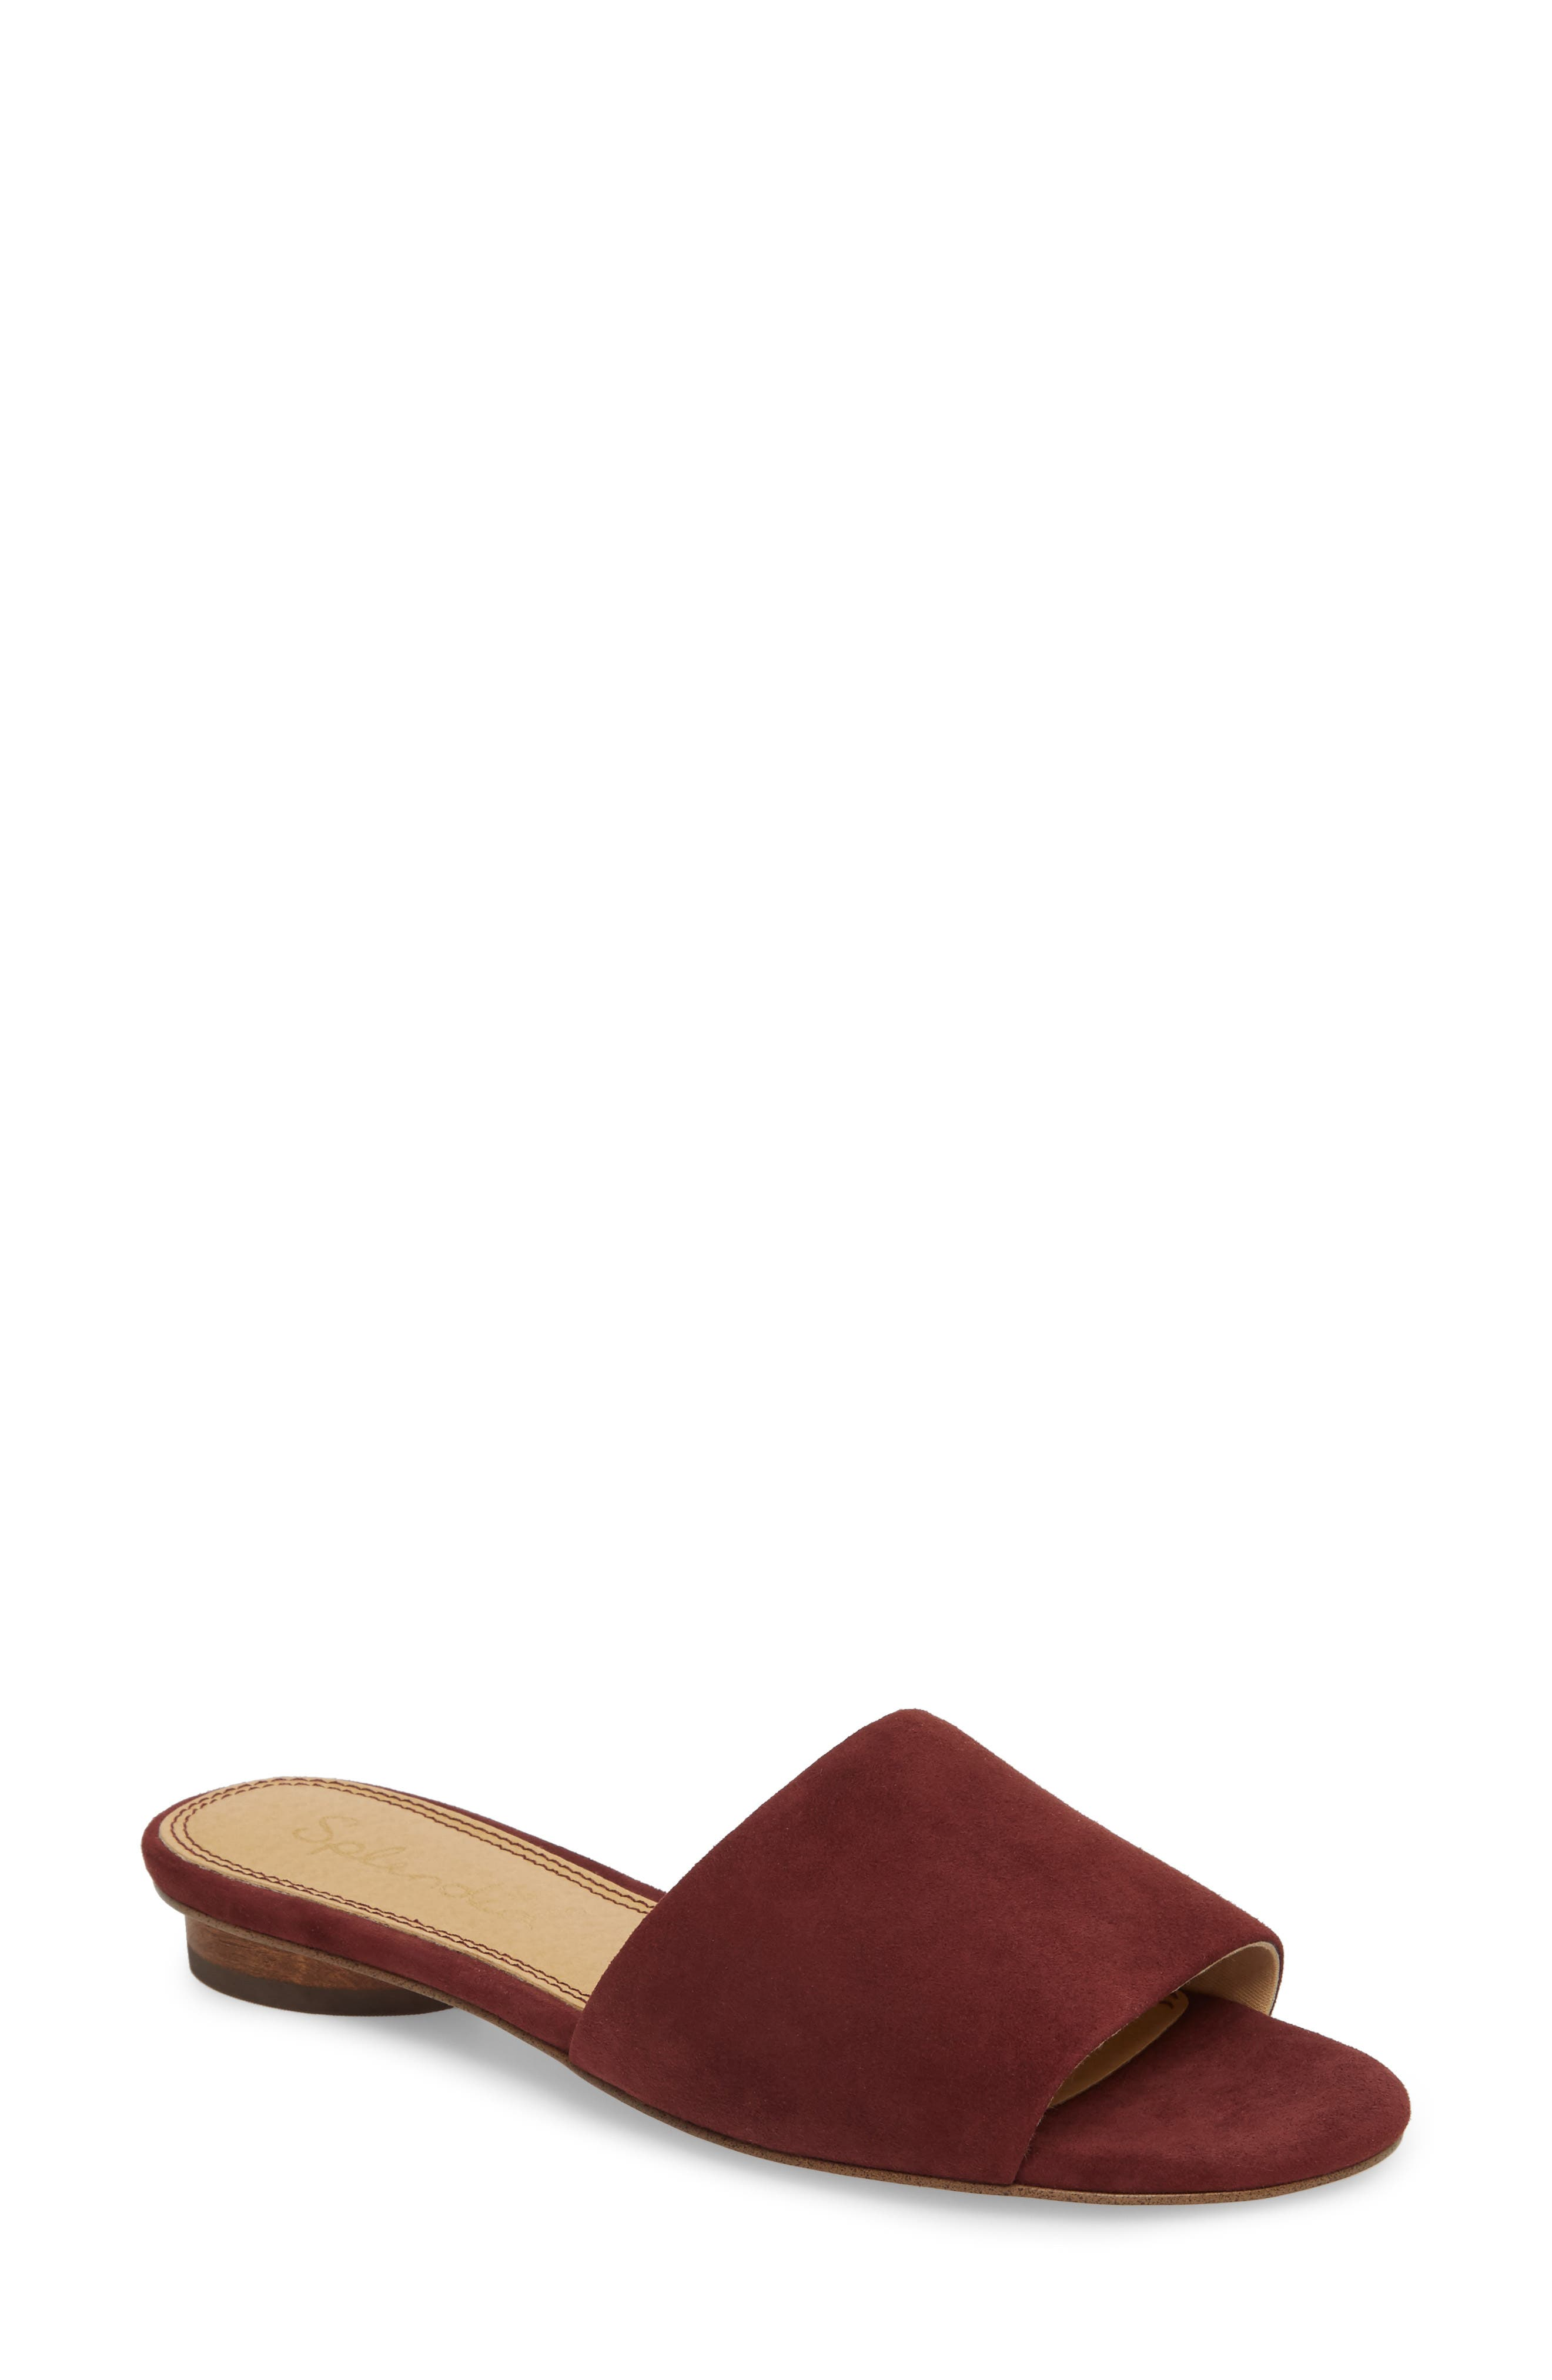 Betsy Slide Sandal,                             Main thumbnail 1, color,                             Wine Suede